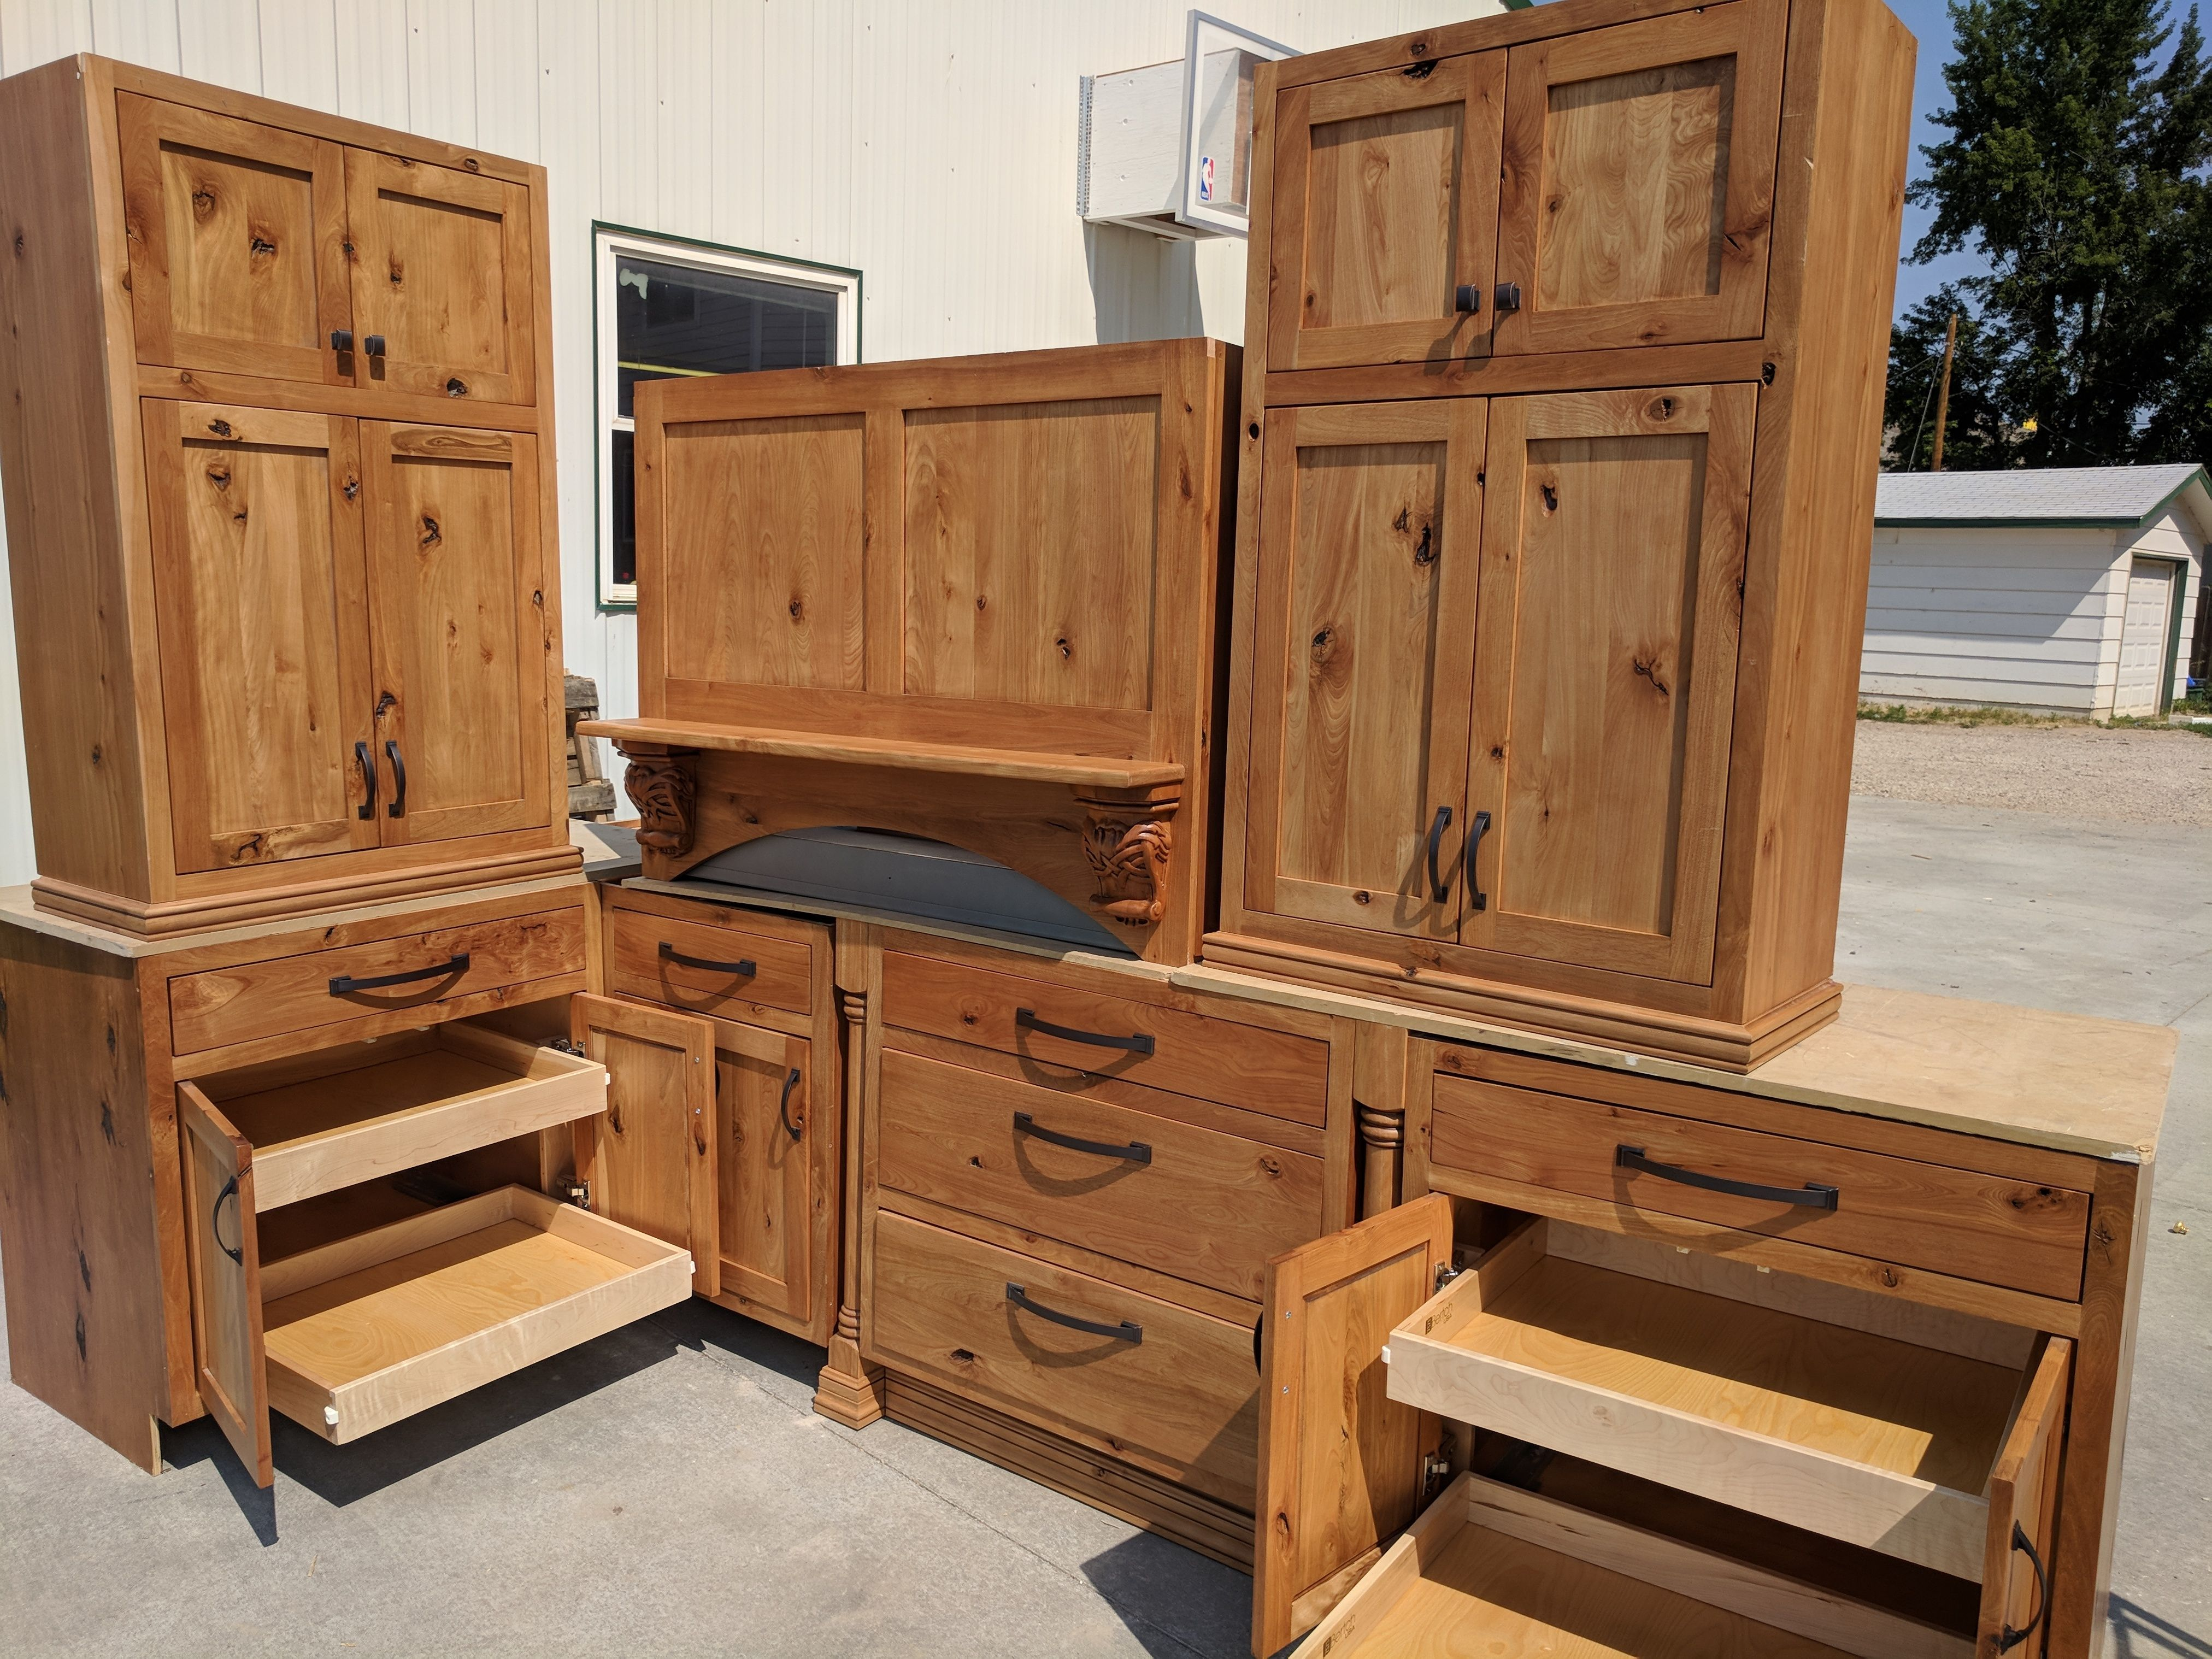 Top Rated Local® Repurposed Cabinetry | Recycled kitchen ...